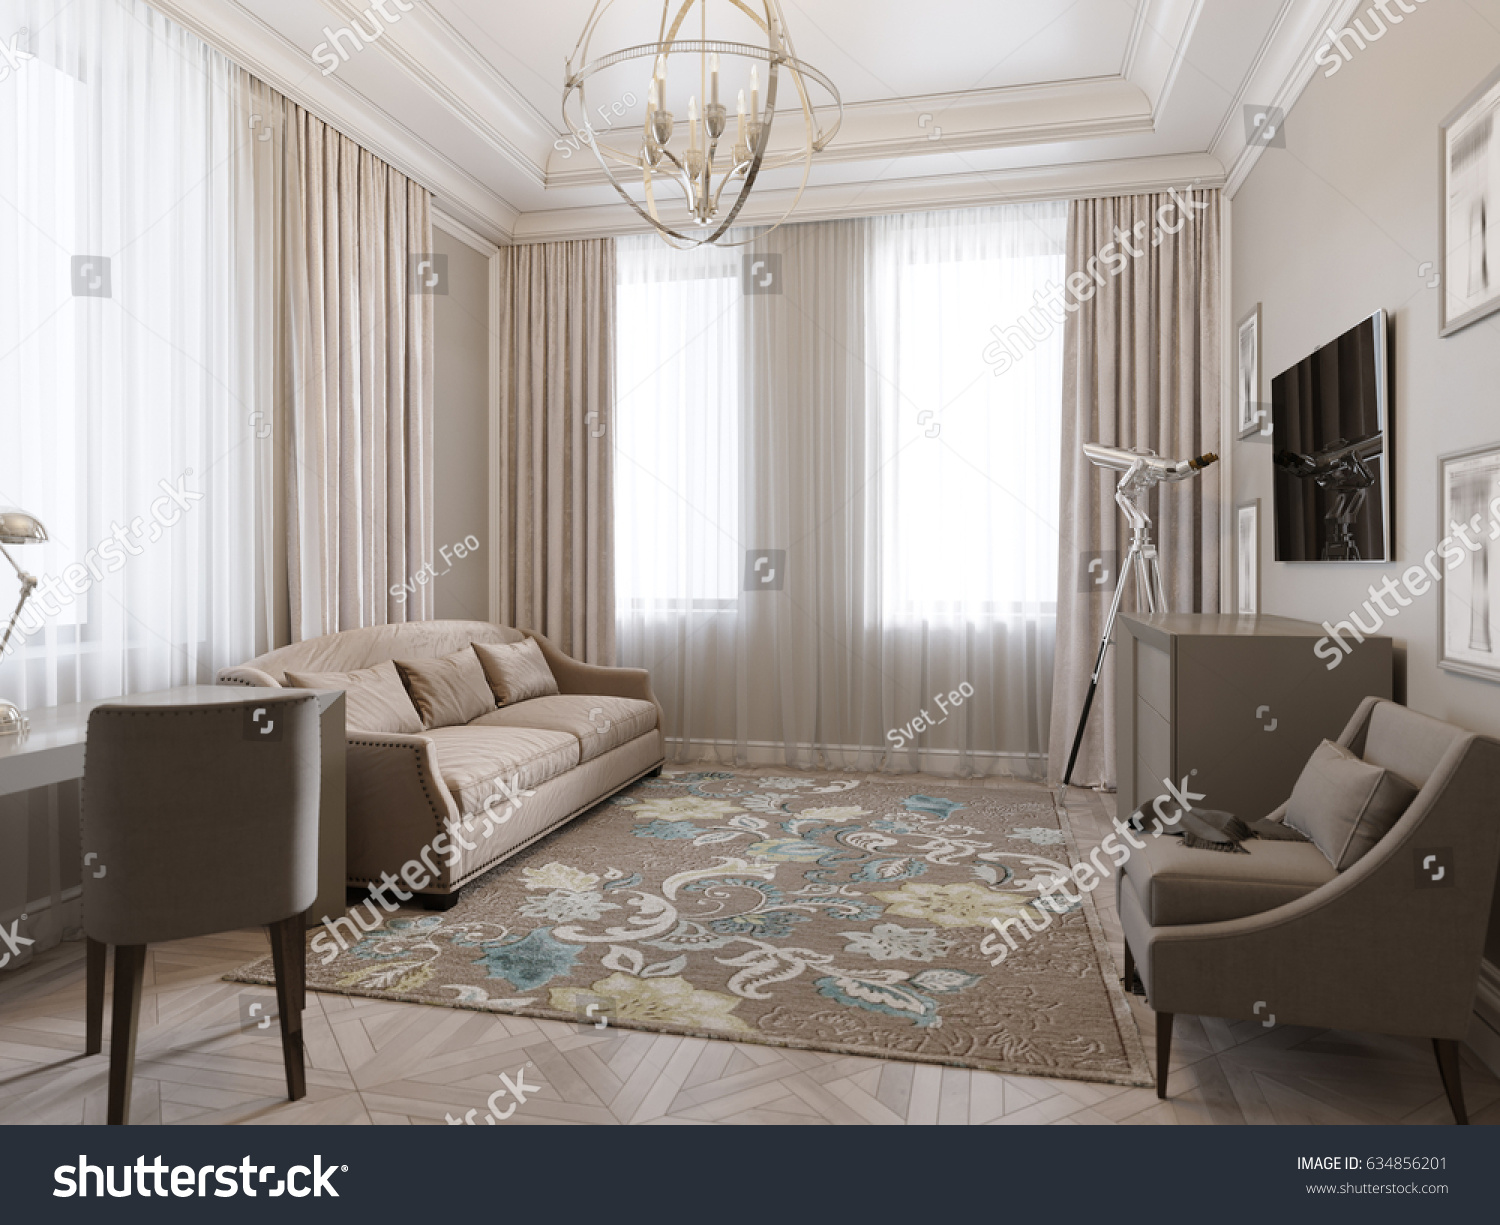 Classic traditional modern room home office living room or bedroom guest room interior design 3d rendering illustration